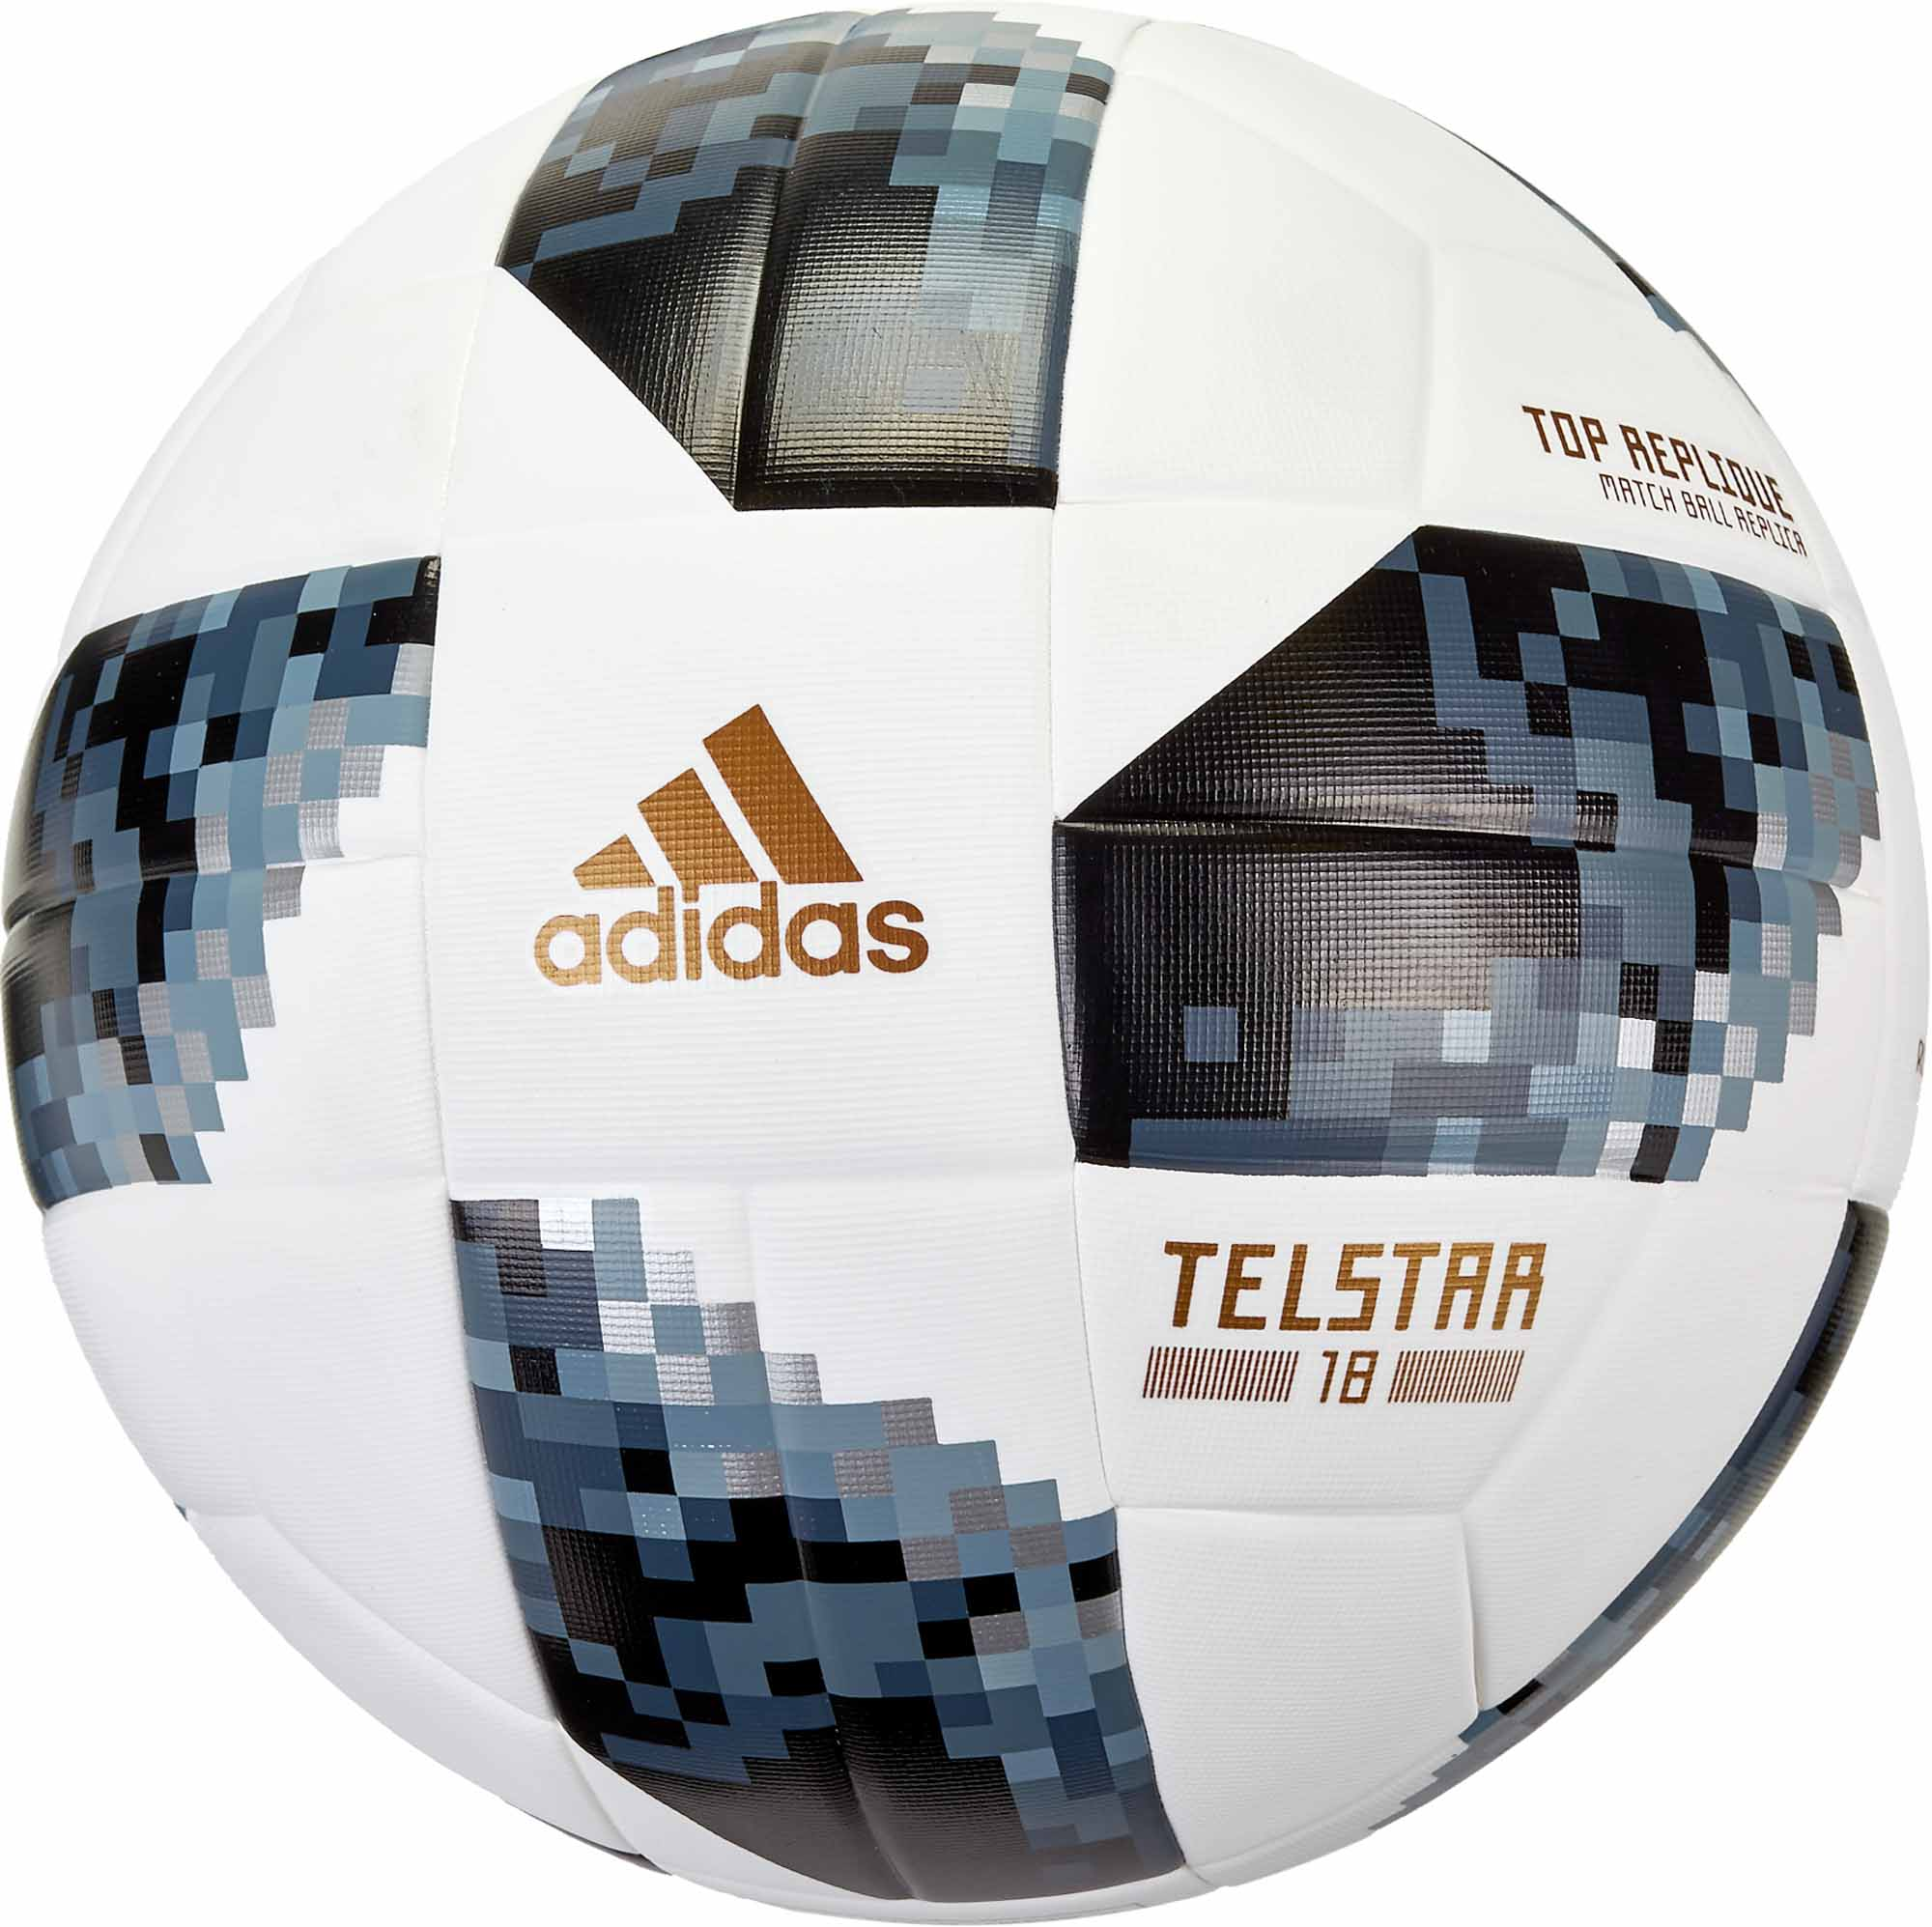 new products 3fcf0 e05bd adidas Telstar 18 World Cup Top Replique Soccer Ball – White   Metallic  Silver